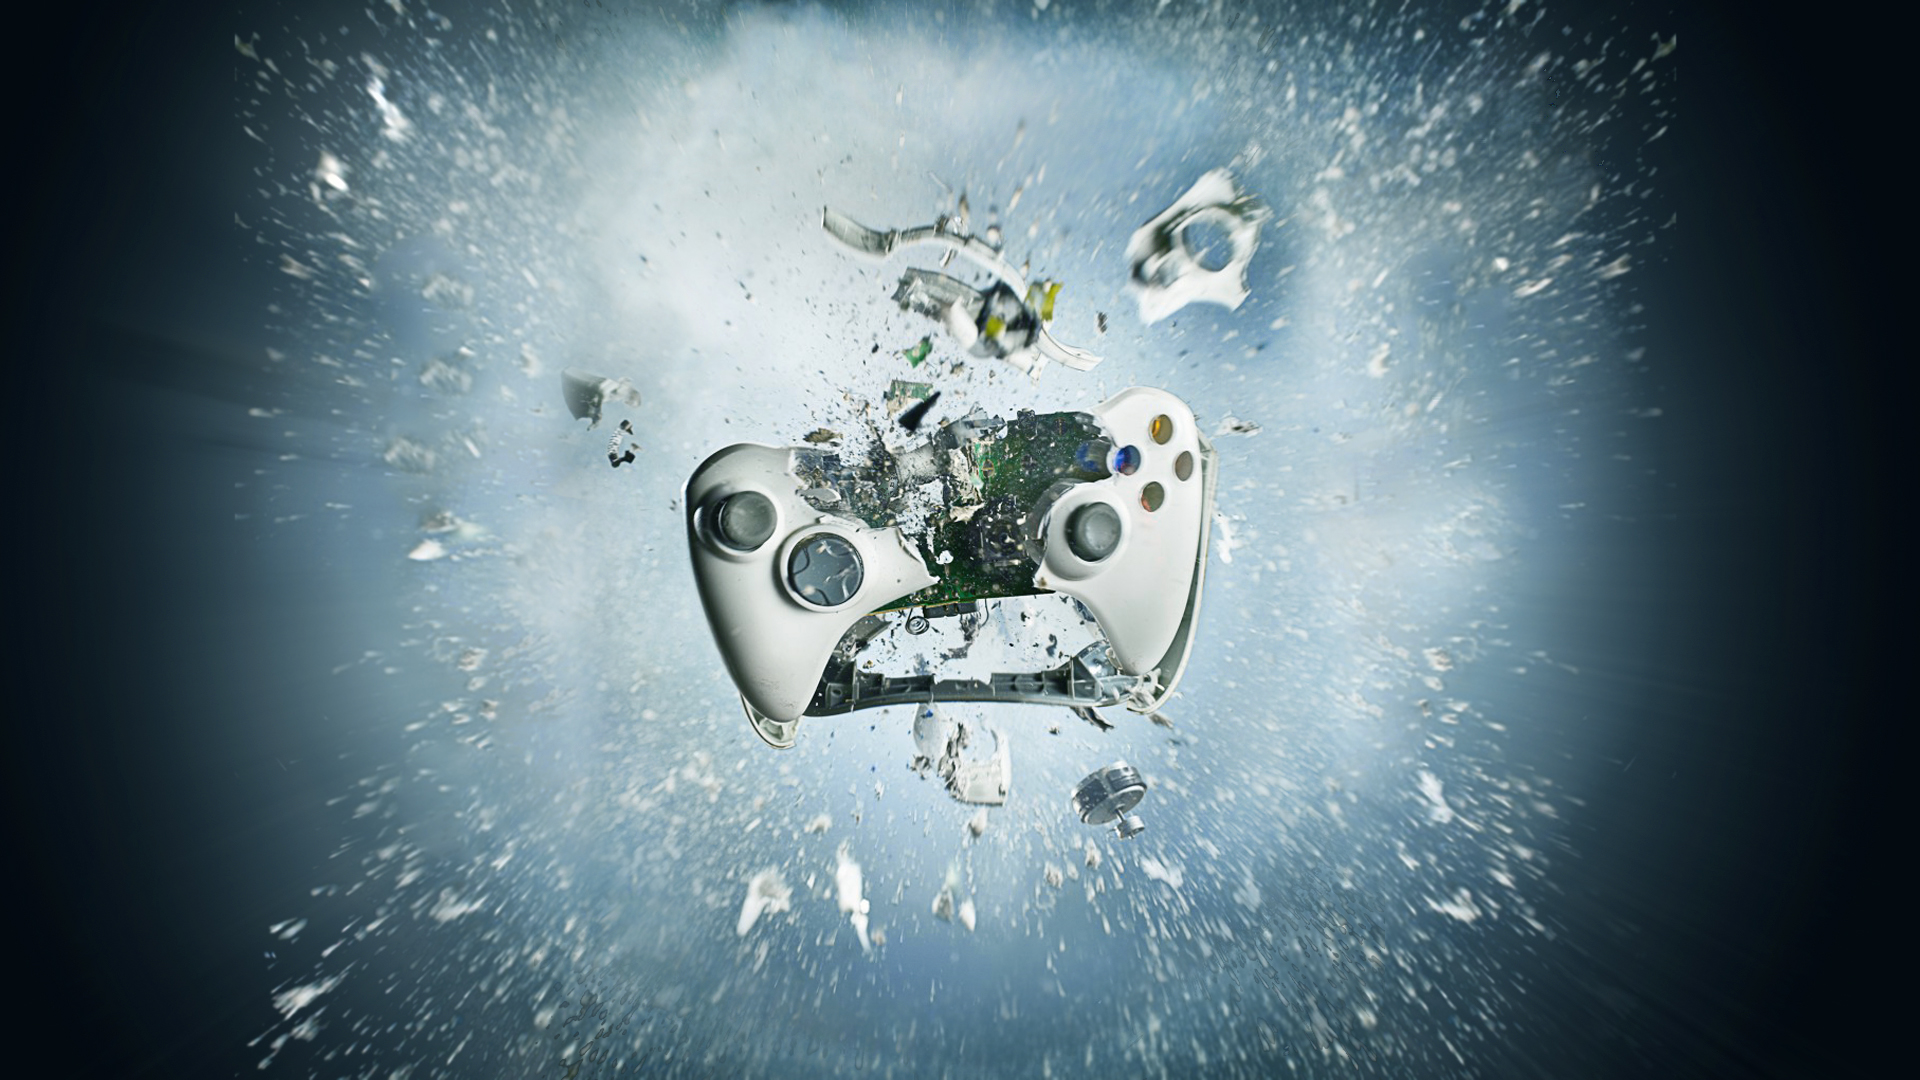 Video Game - Xbox Wallpaper